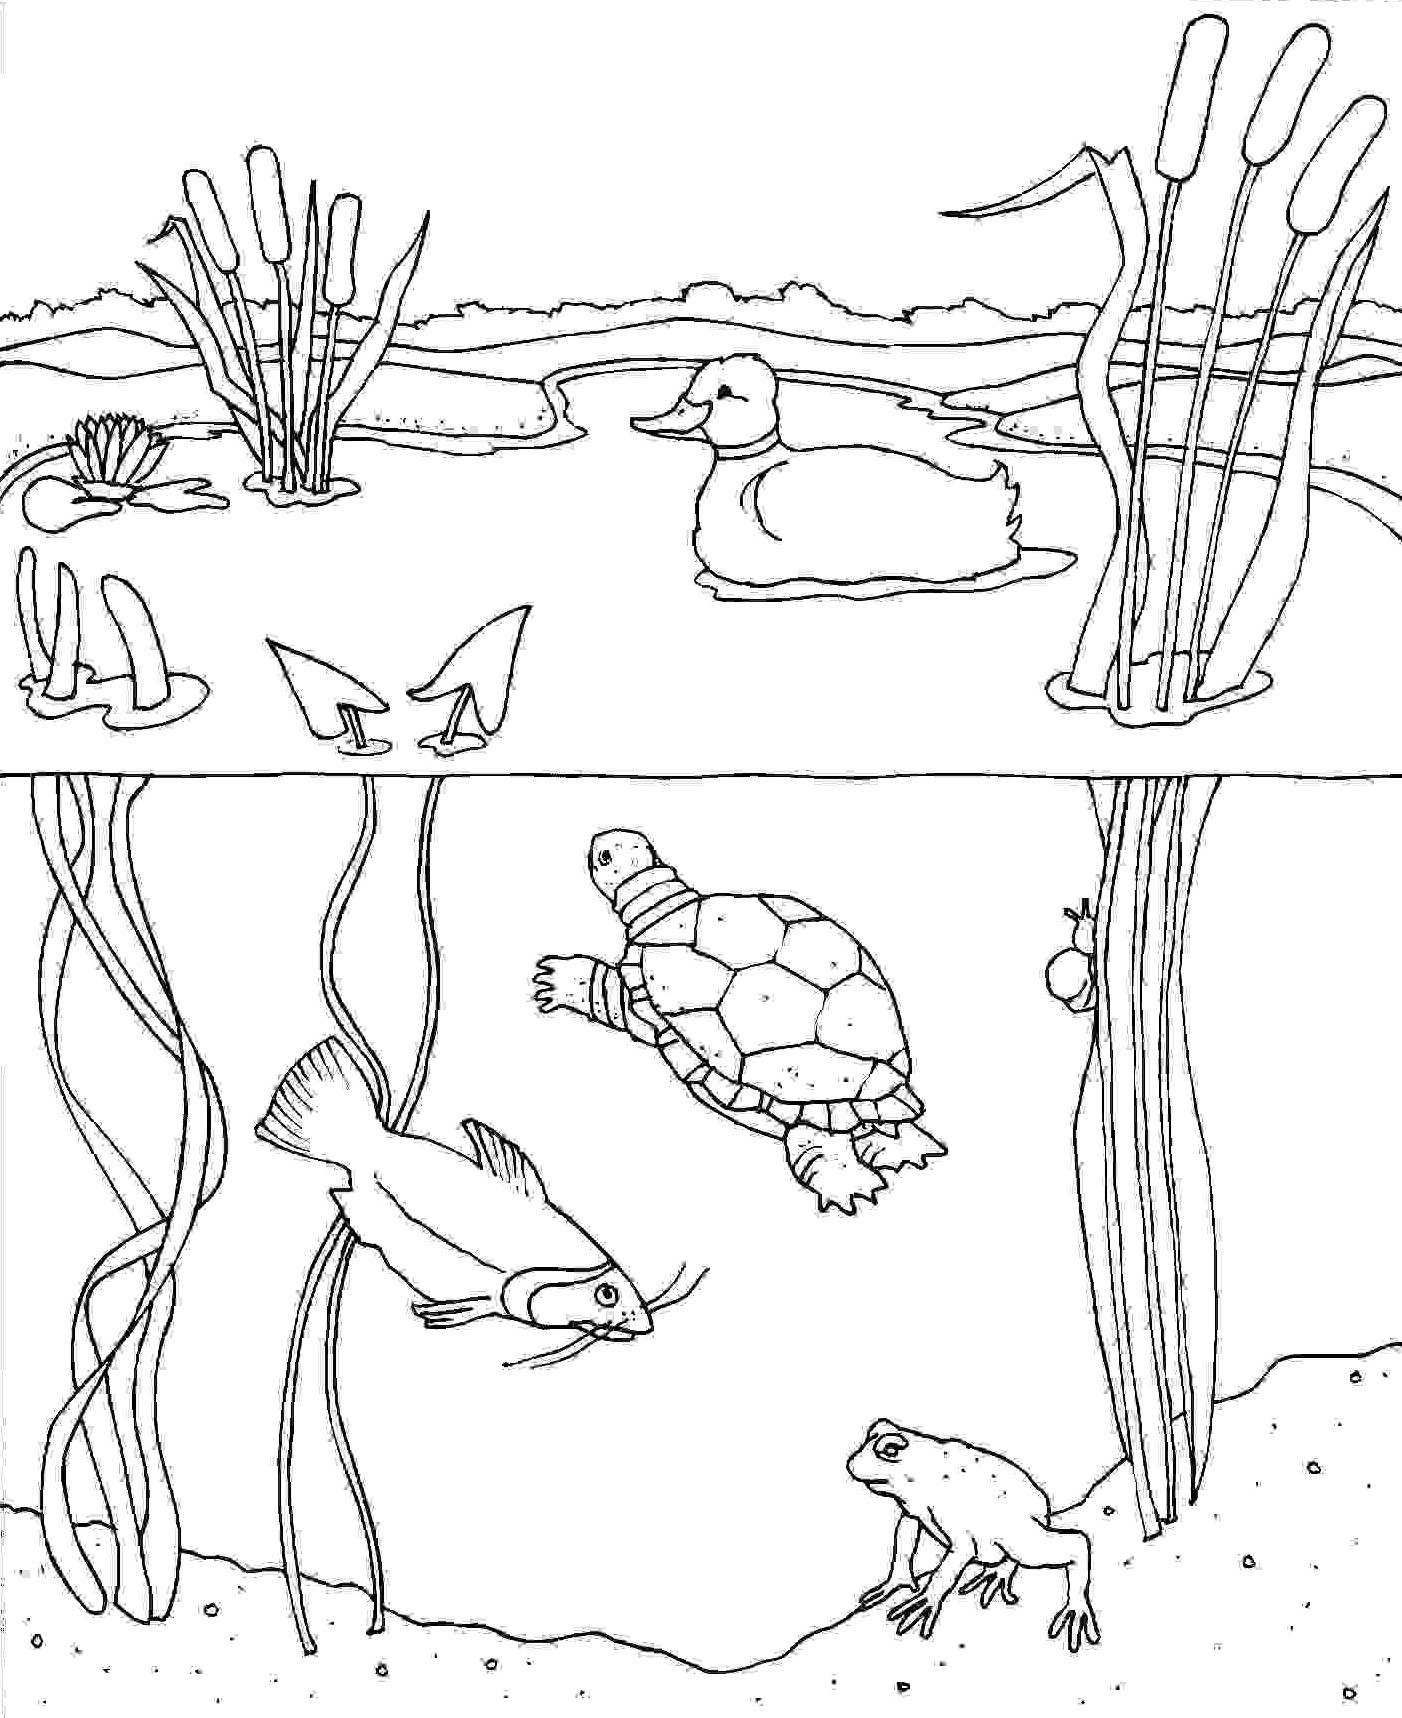 Pond Animals Coloring Pages At Getcolorings